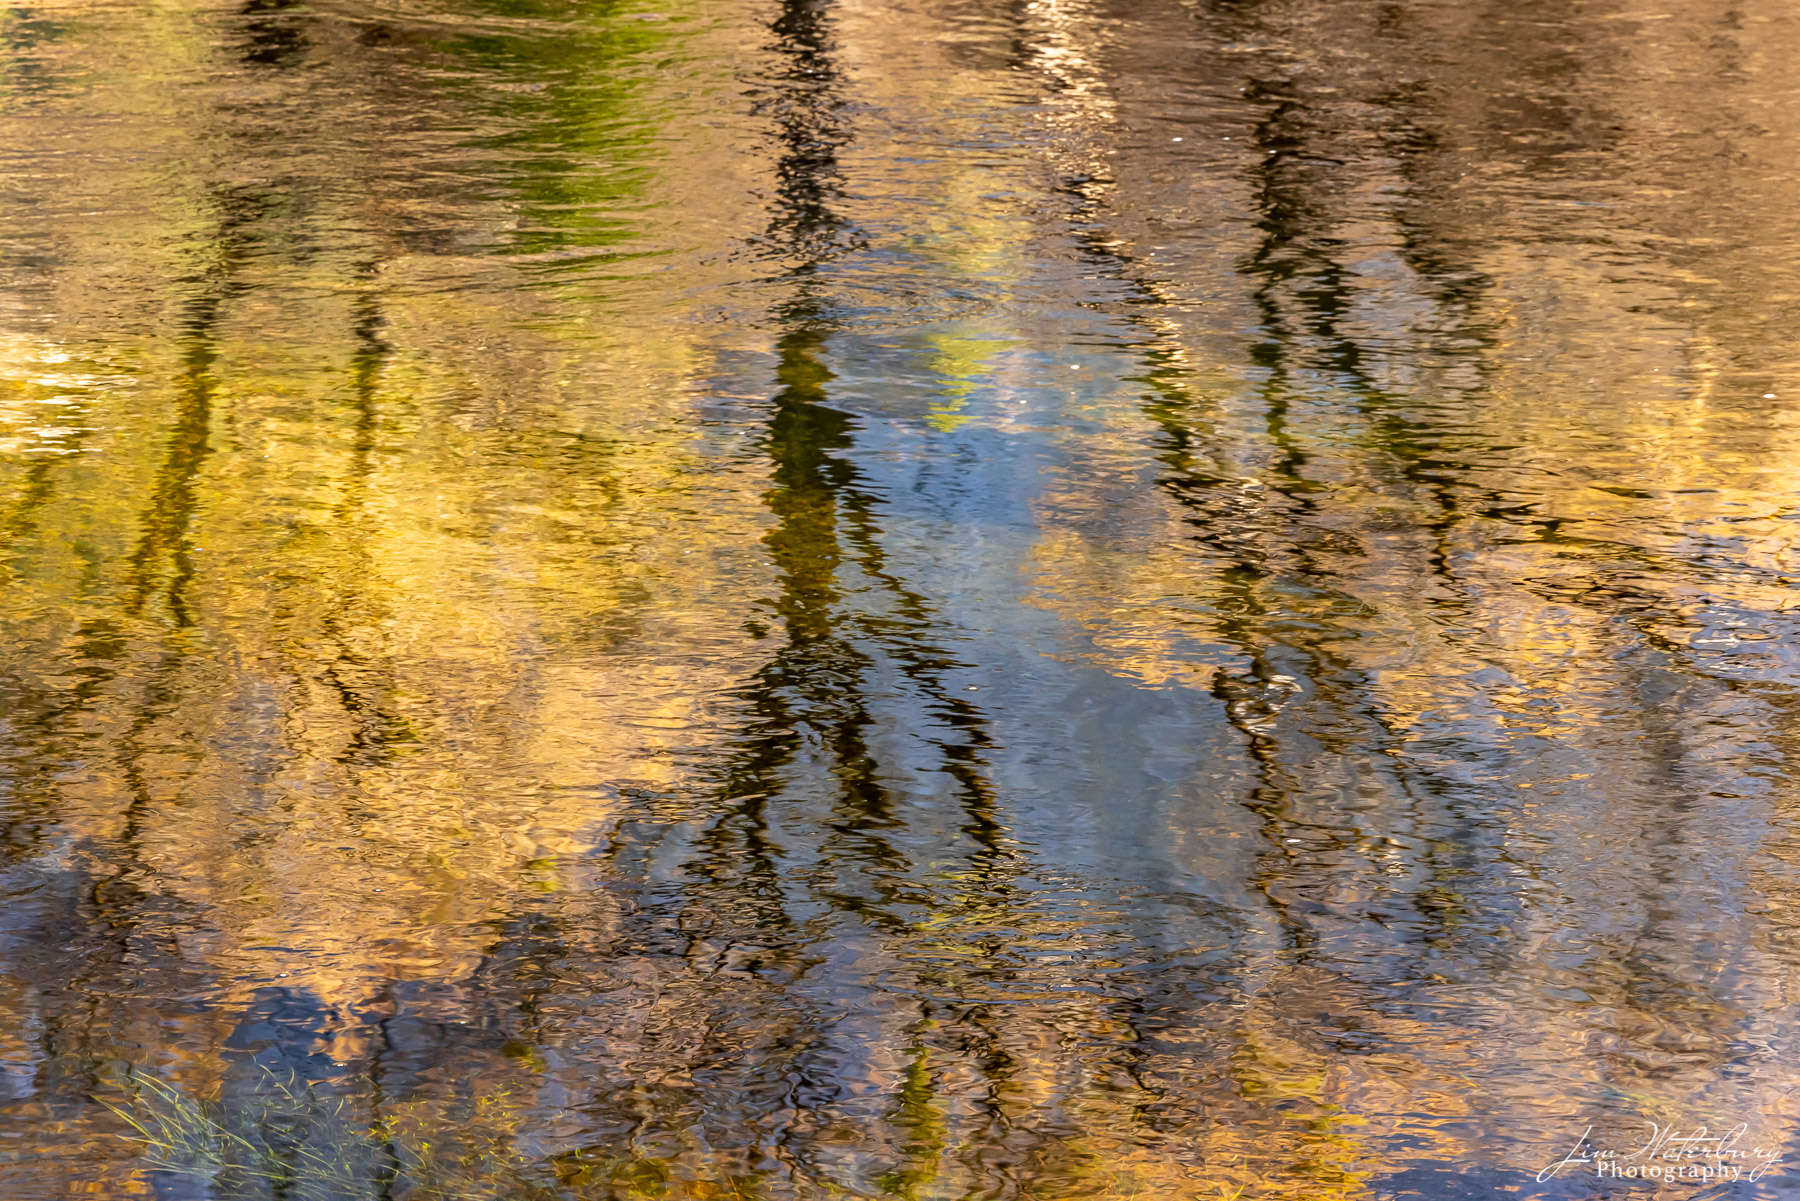 Reflection of cliffs and trees in the Merced River